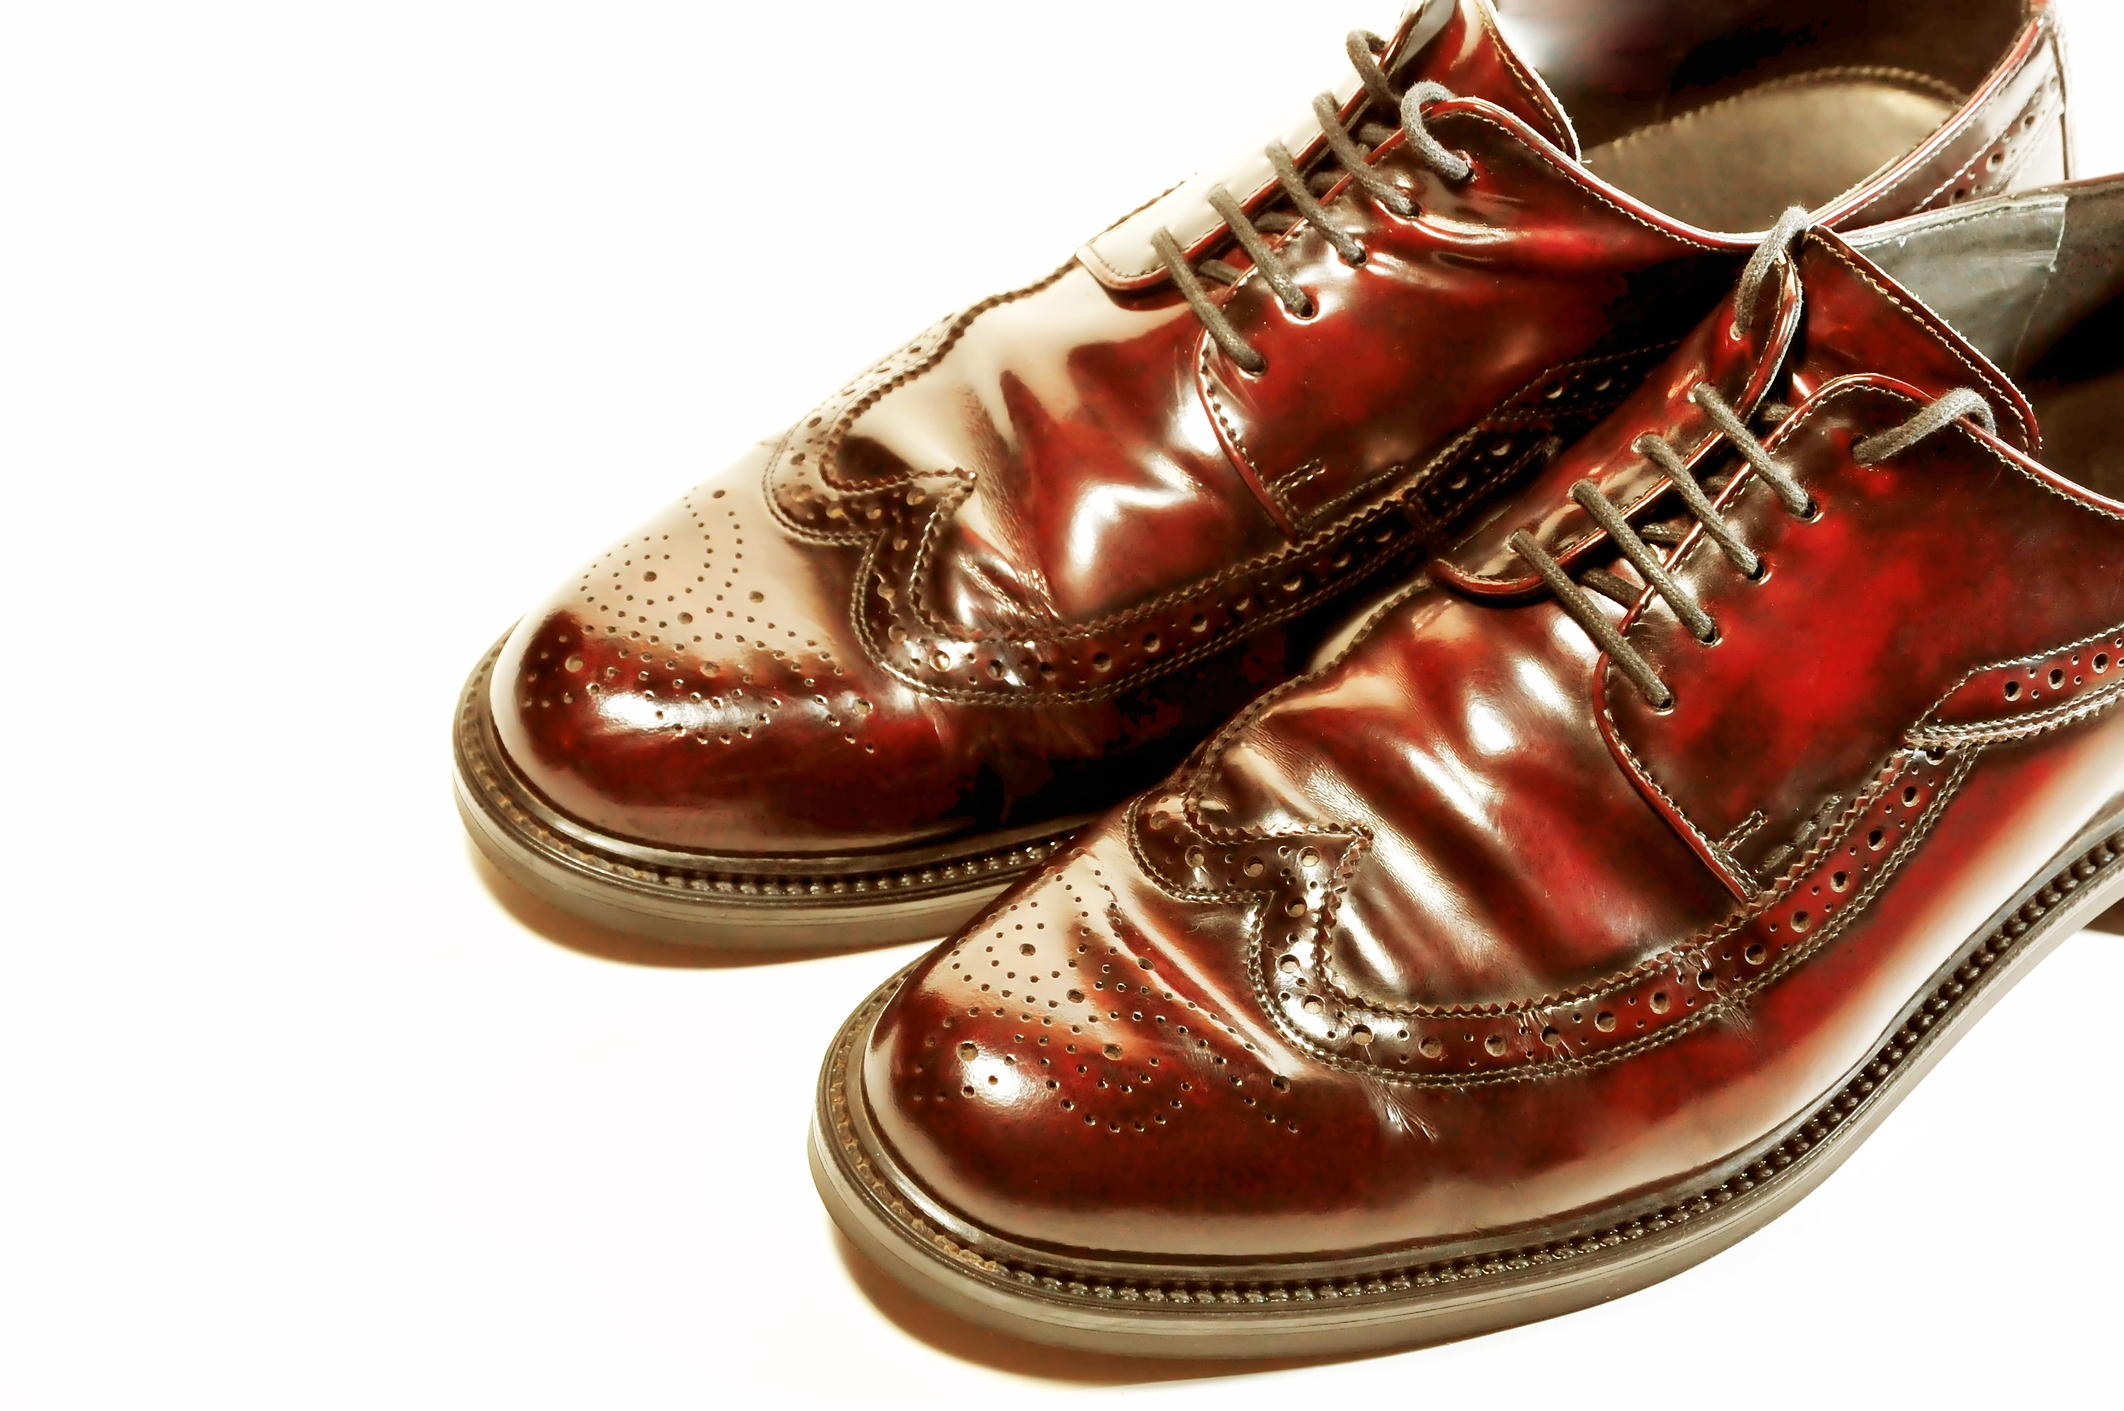 https://www.dreamstime.com/royalty-free-stock-photos-pair-old-fashioned-brown-shoes-isolated-image20178948